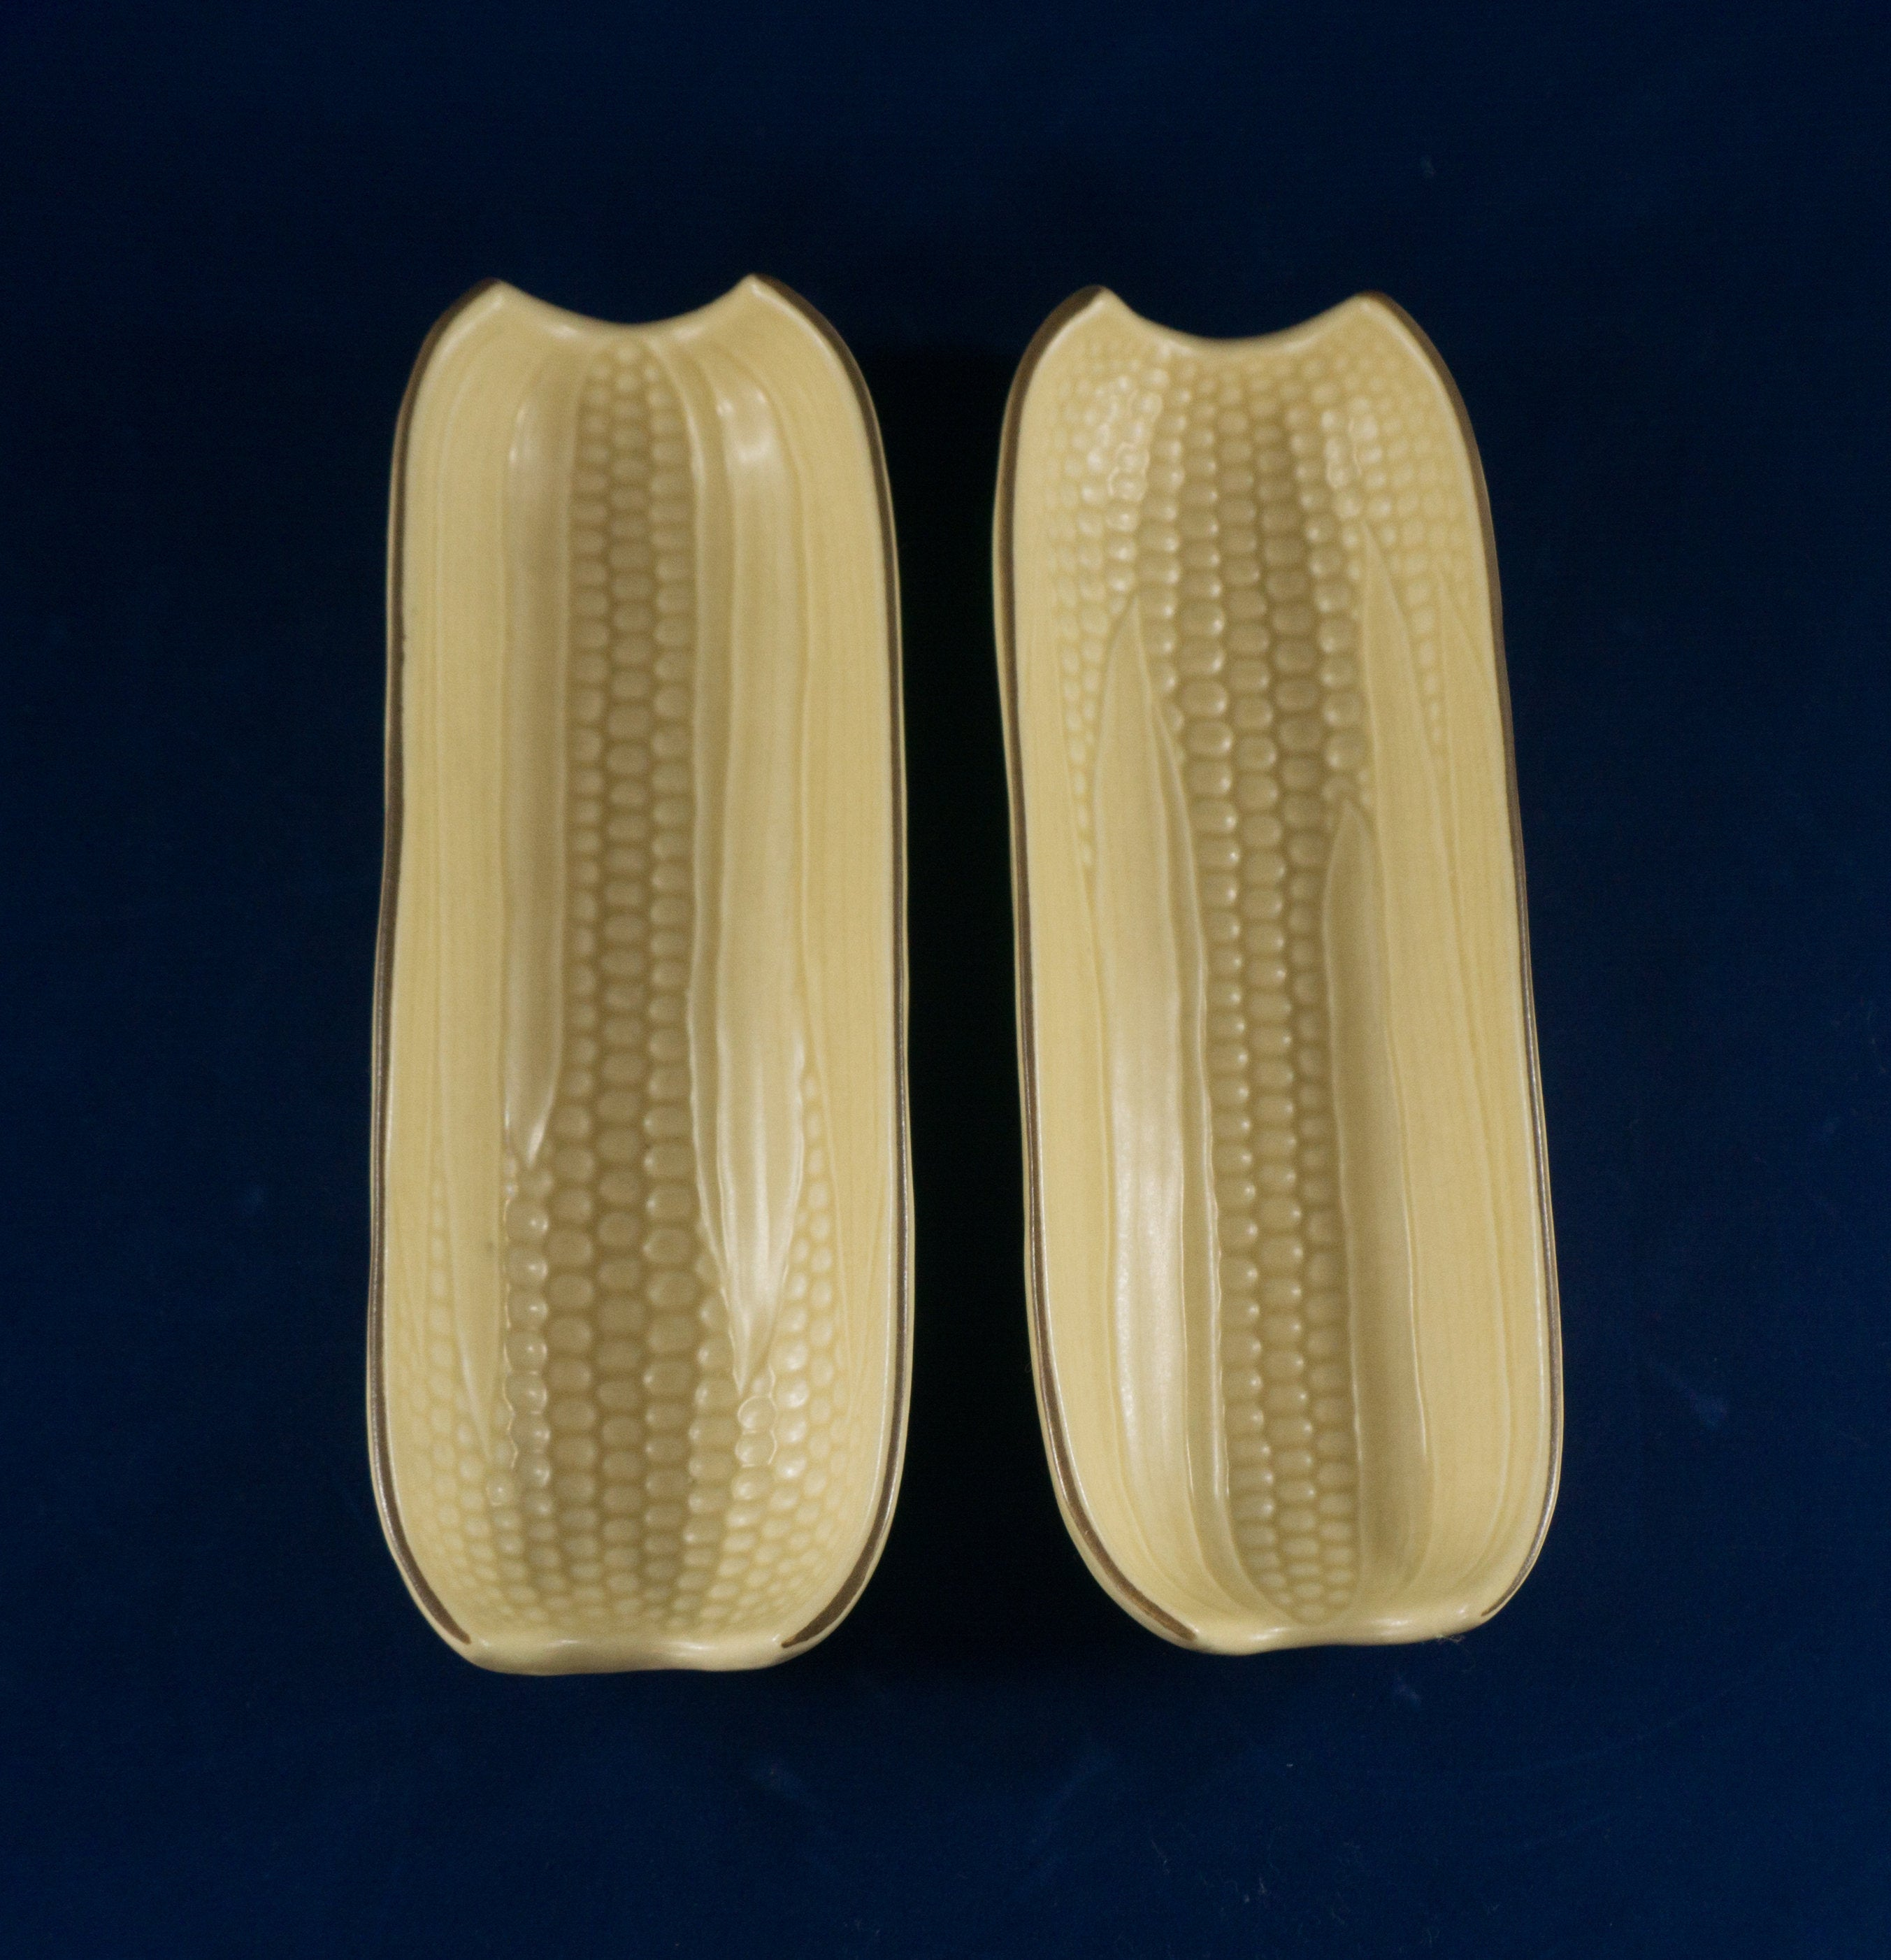 TWO Vintage Boiled Corn Holder in Village (Made in USA) by Pfaltzgraff